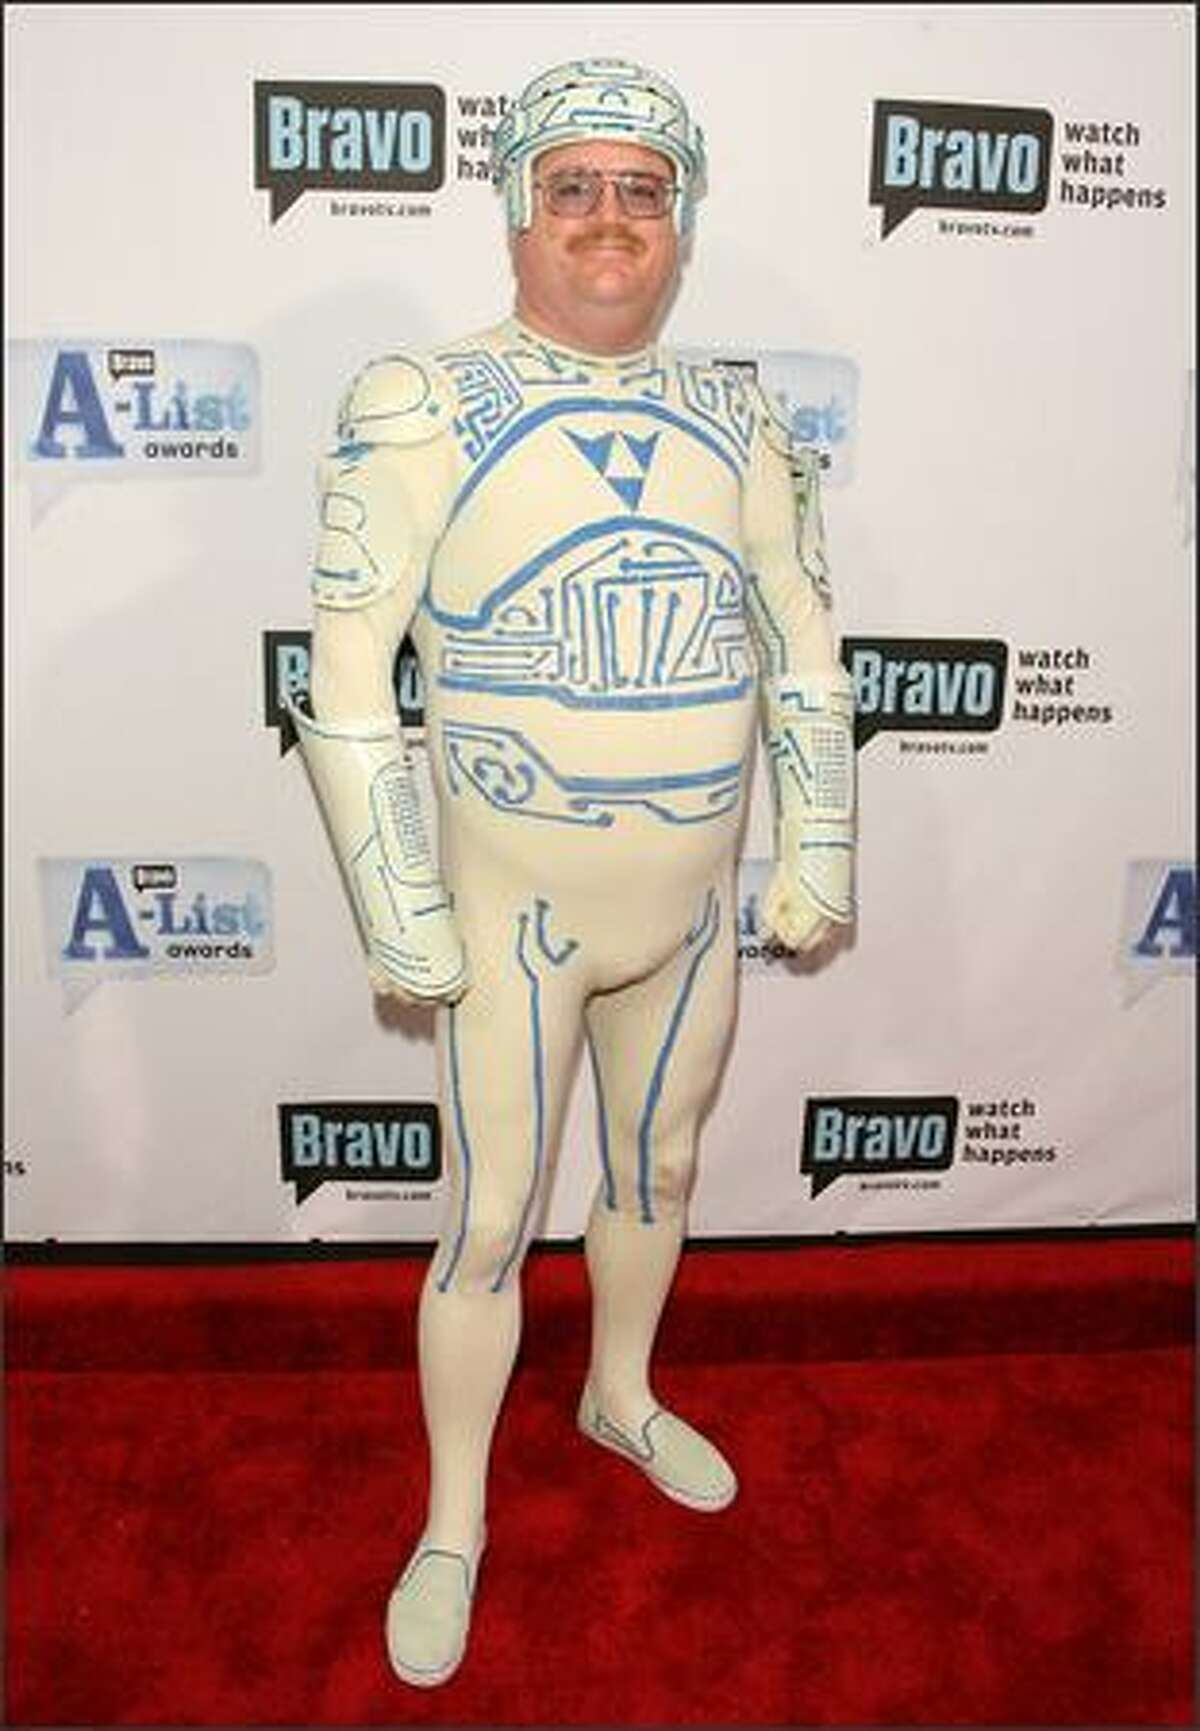 """""""Tron Guy"""" Jay Maynard attends Bravo's First """"A-List Awards"""" show at the Hammerstein Ballroom in New York."""